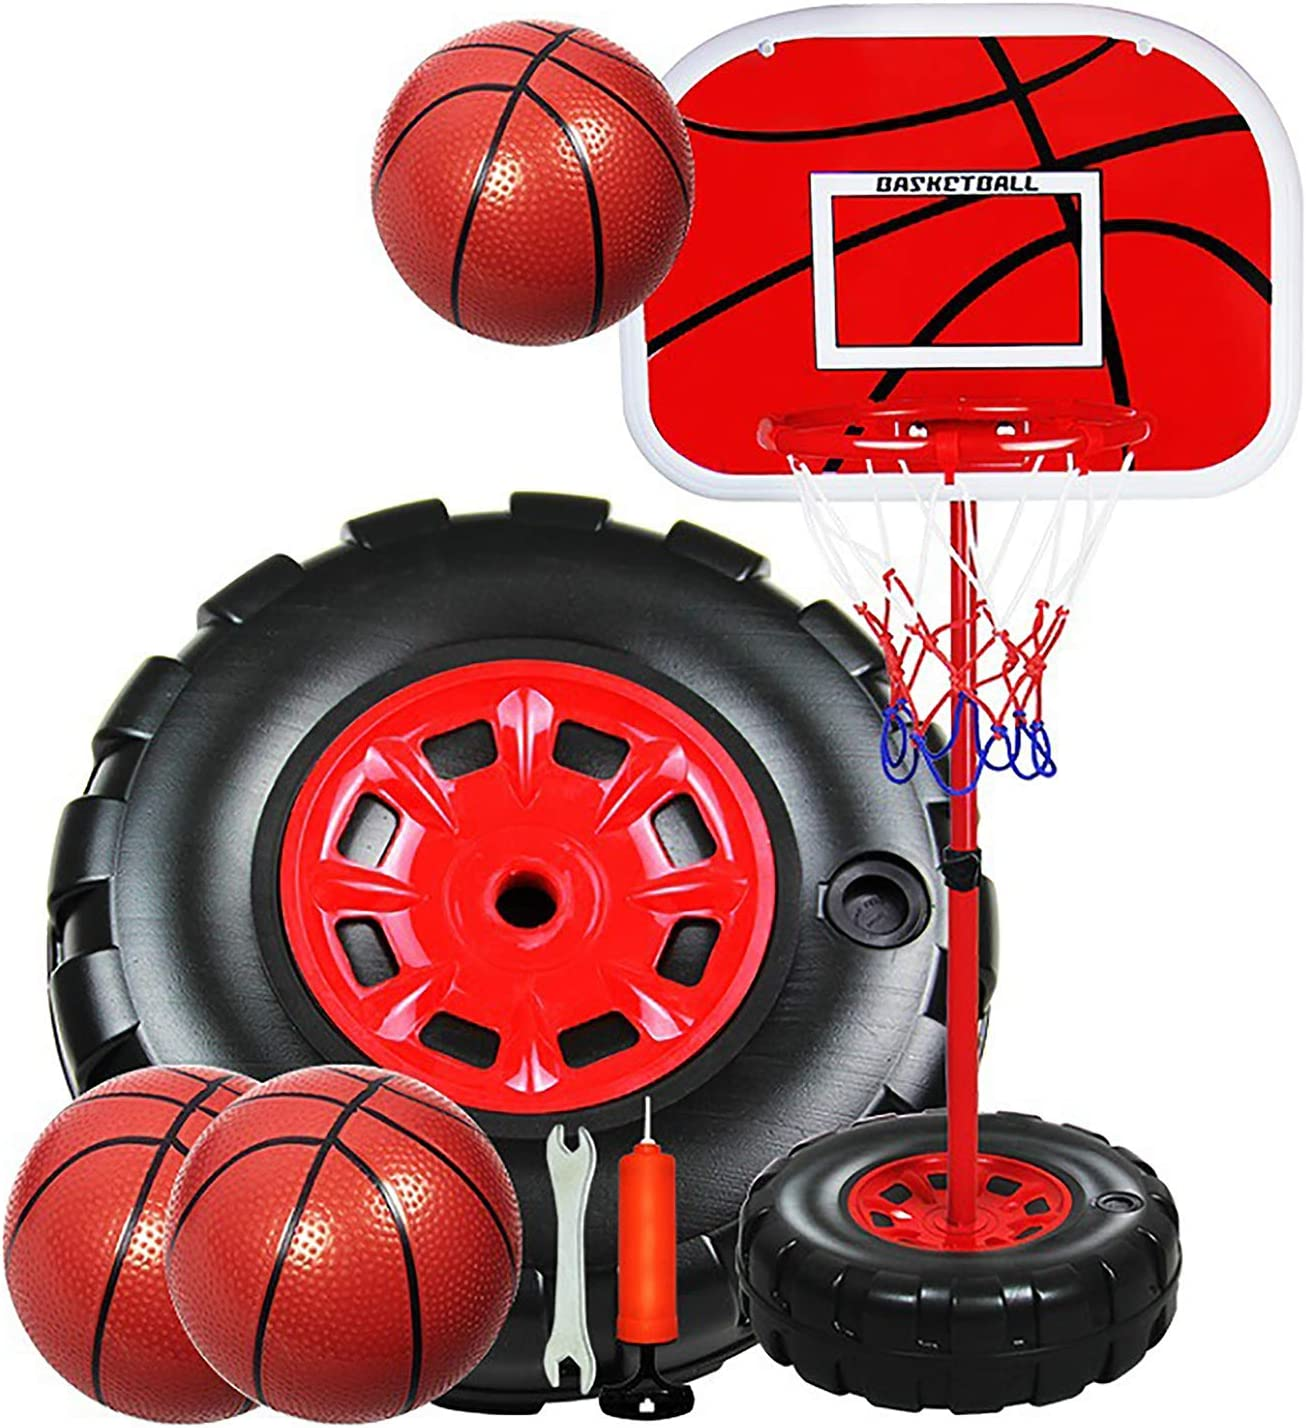 1.7M Kids Basketball Hoop Stand System Portable Adjustable Height Net Ring Ball